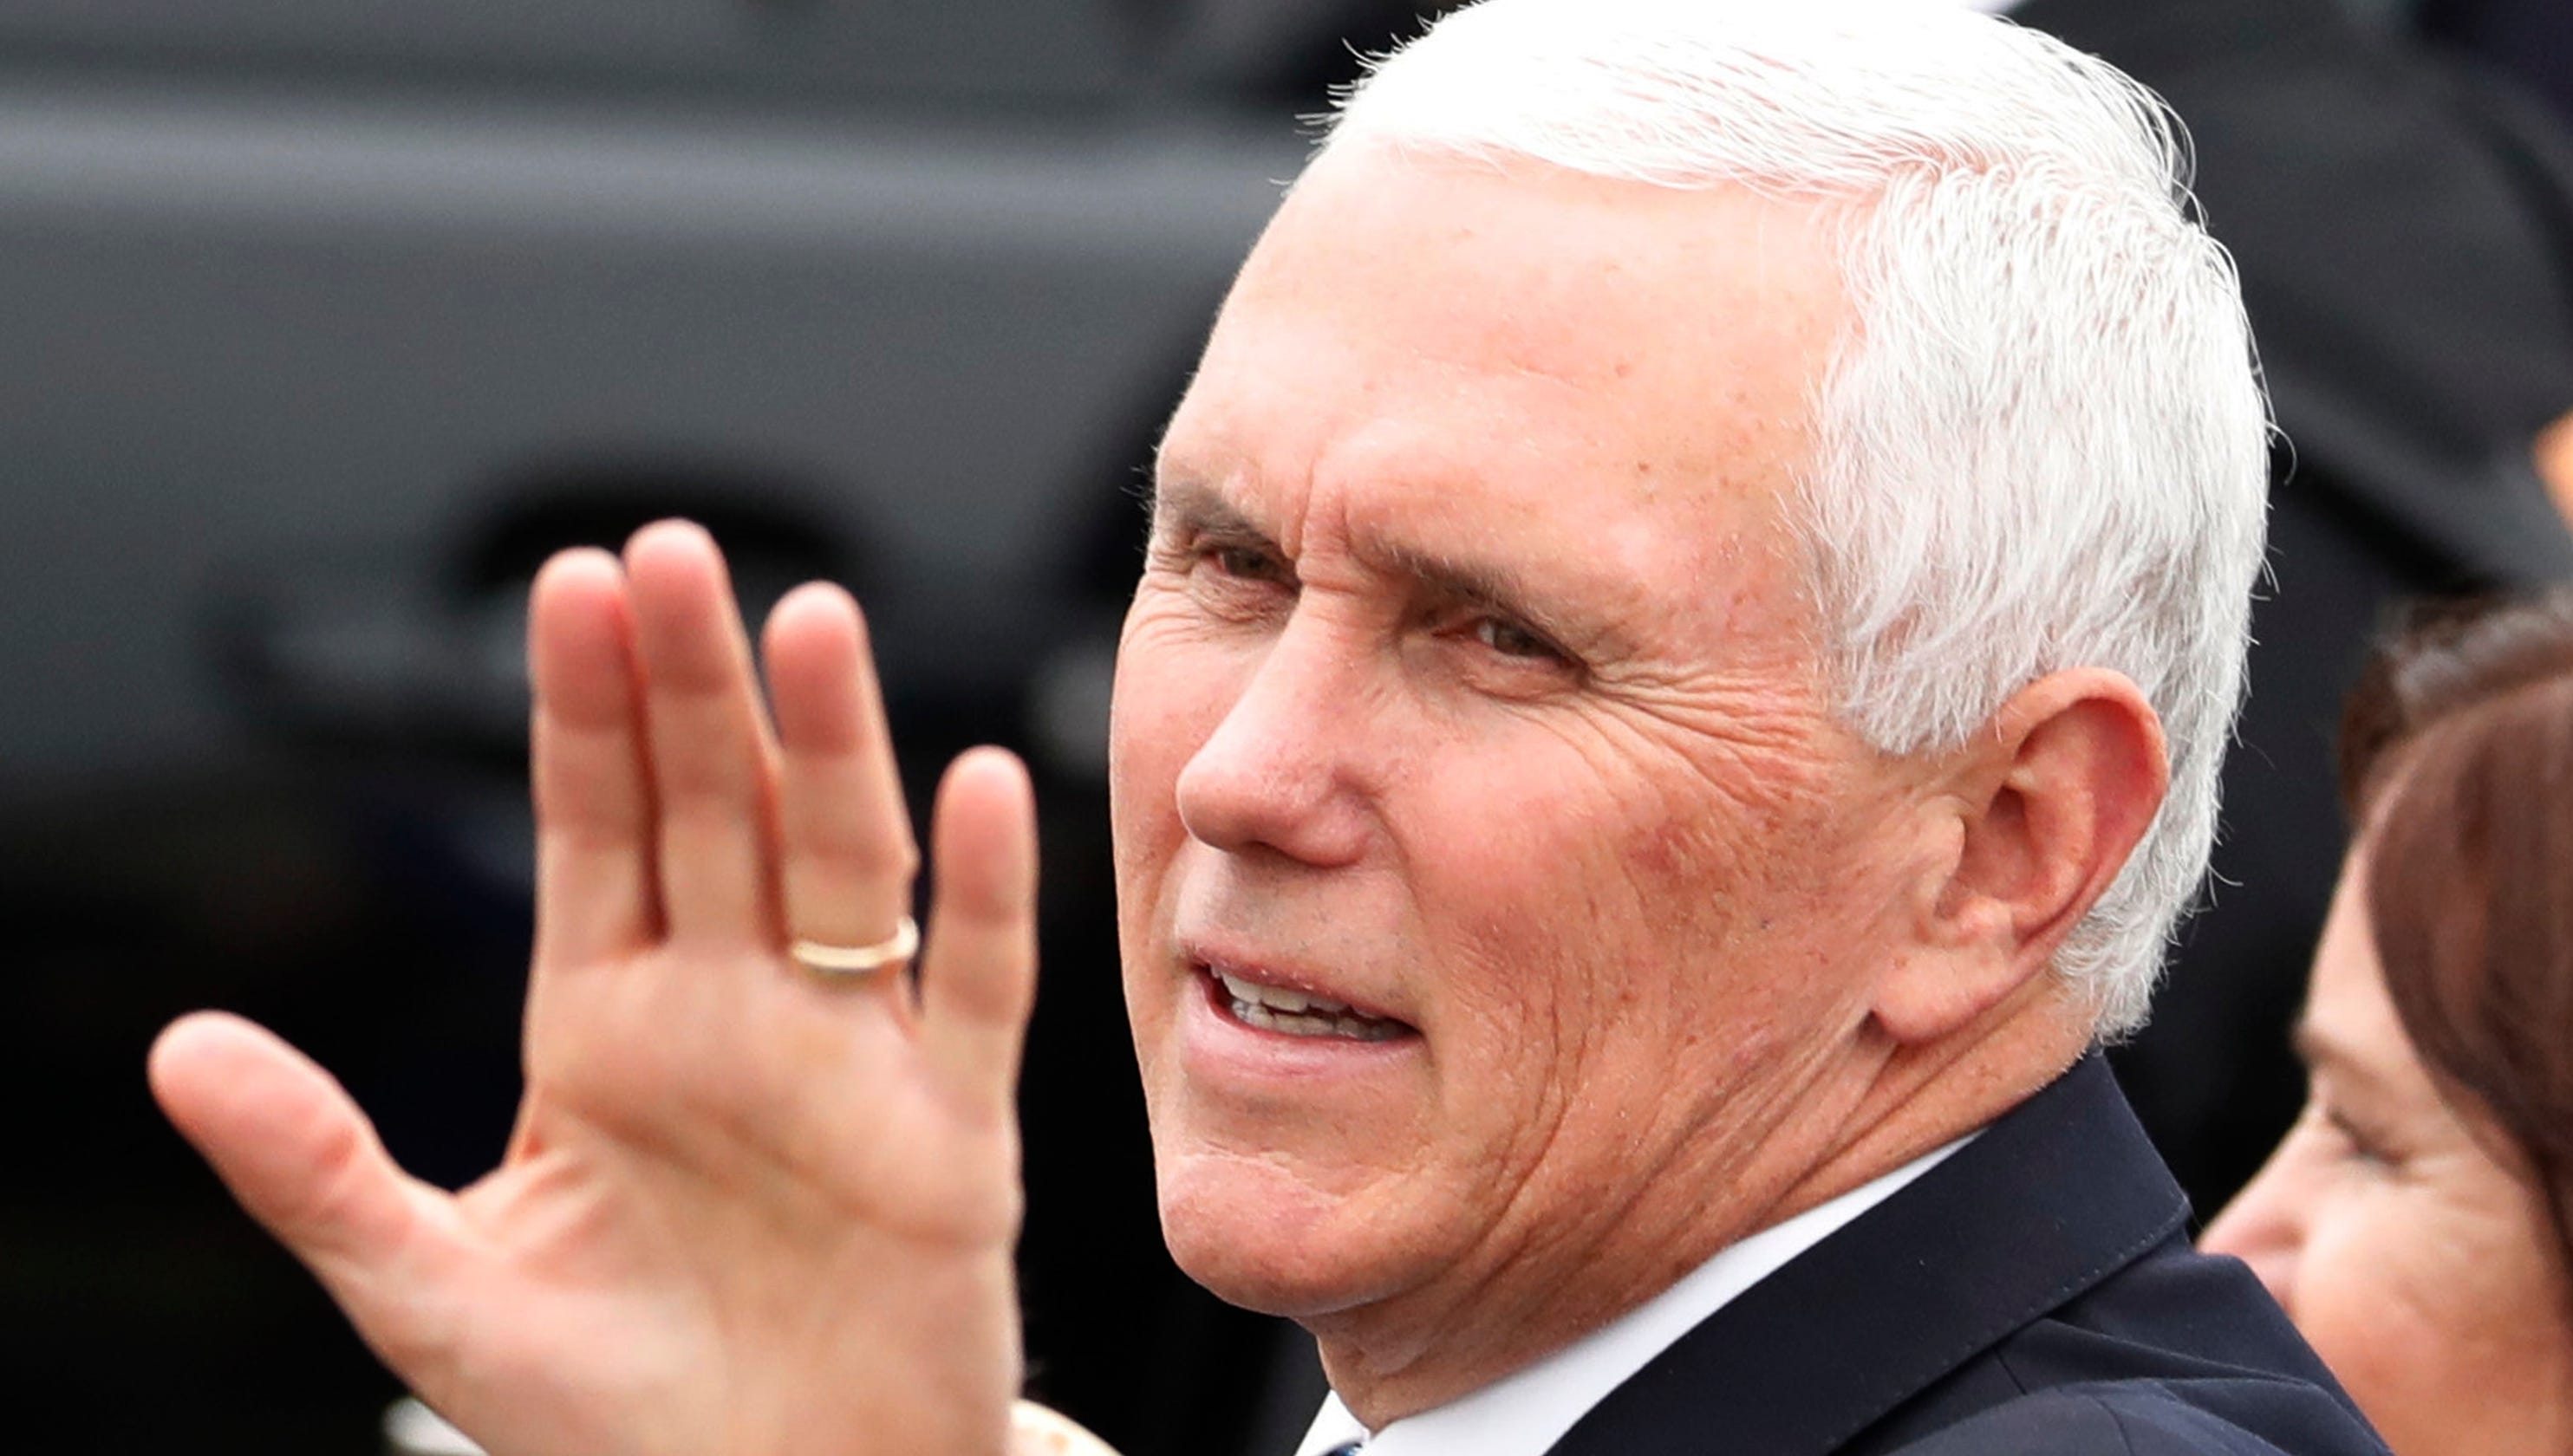 Congress could raise the pay of Vice President Mike Pence